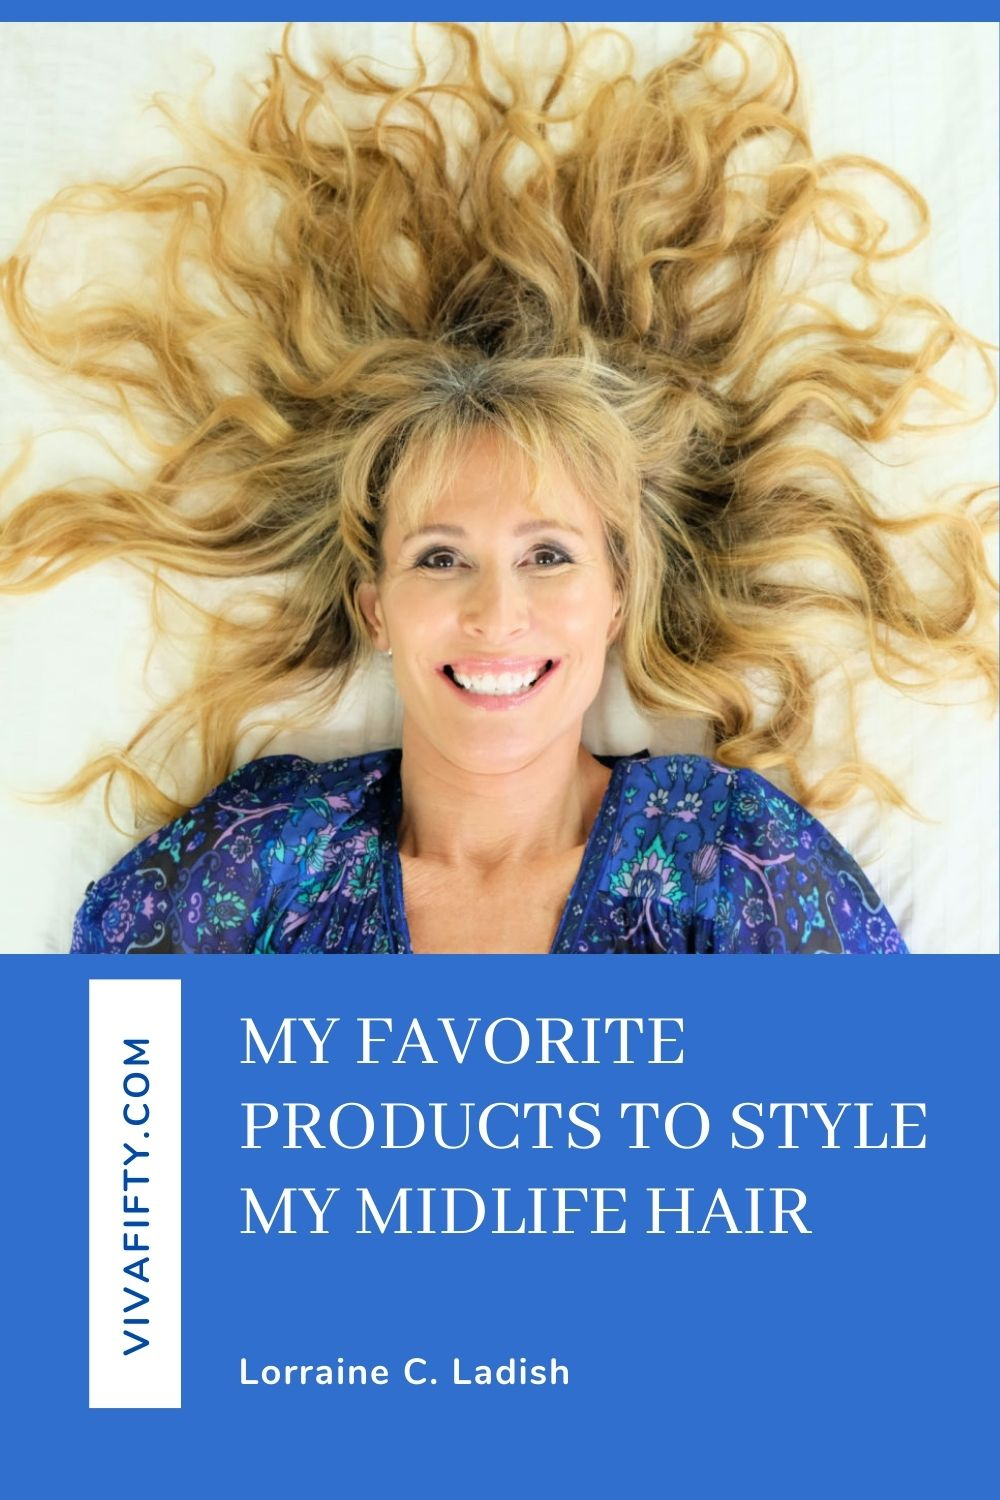 After over a year of using Hair Biology products, I'm sharing with you my ultimate favorites that even travel with me.  #ad #HairBiology #BolderNotOlder #TargetBeauty